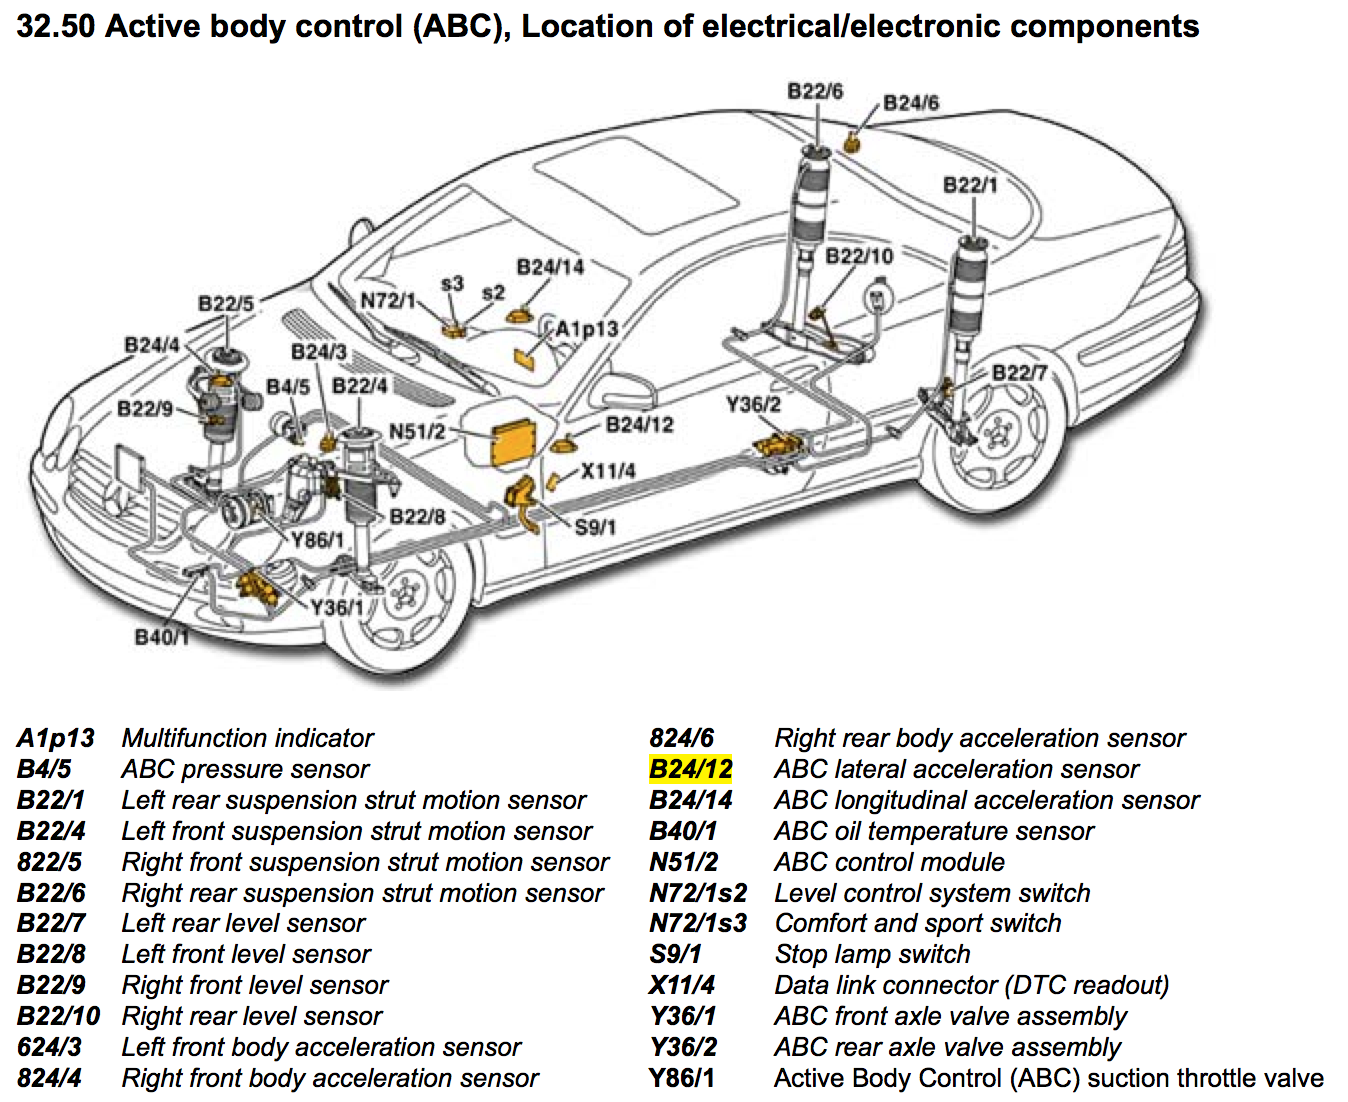 Mercedes Benz Abc System Troubleshooting Guide August